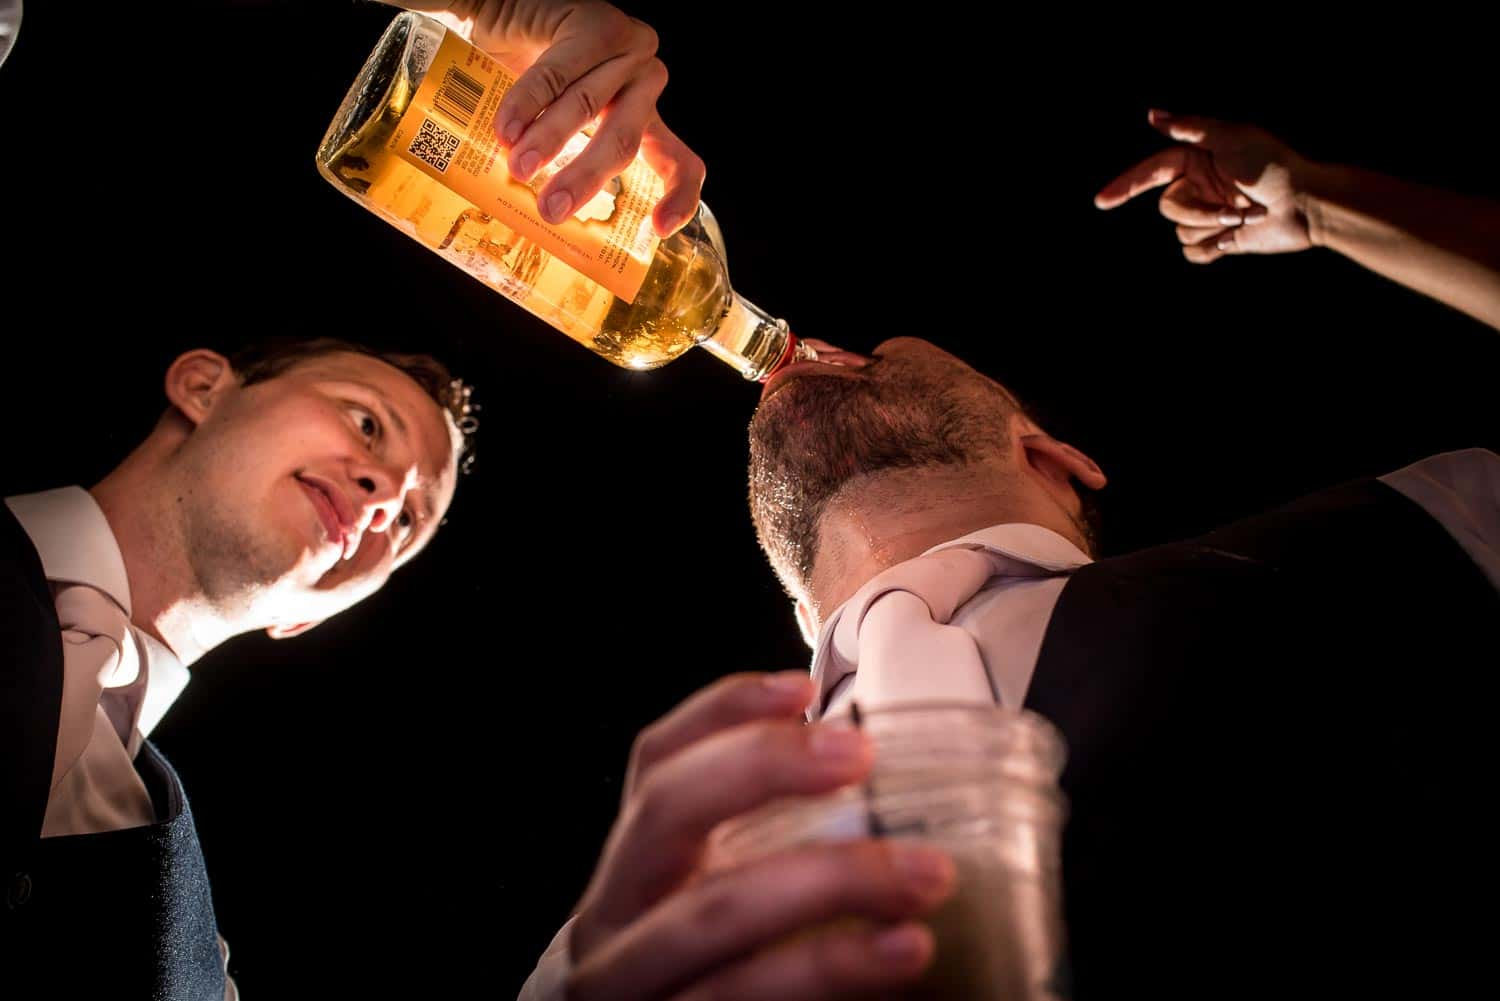 Groomsmen pouring shots into each others mouths